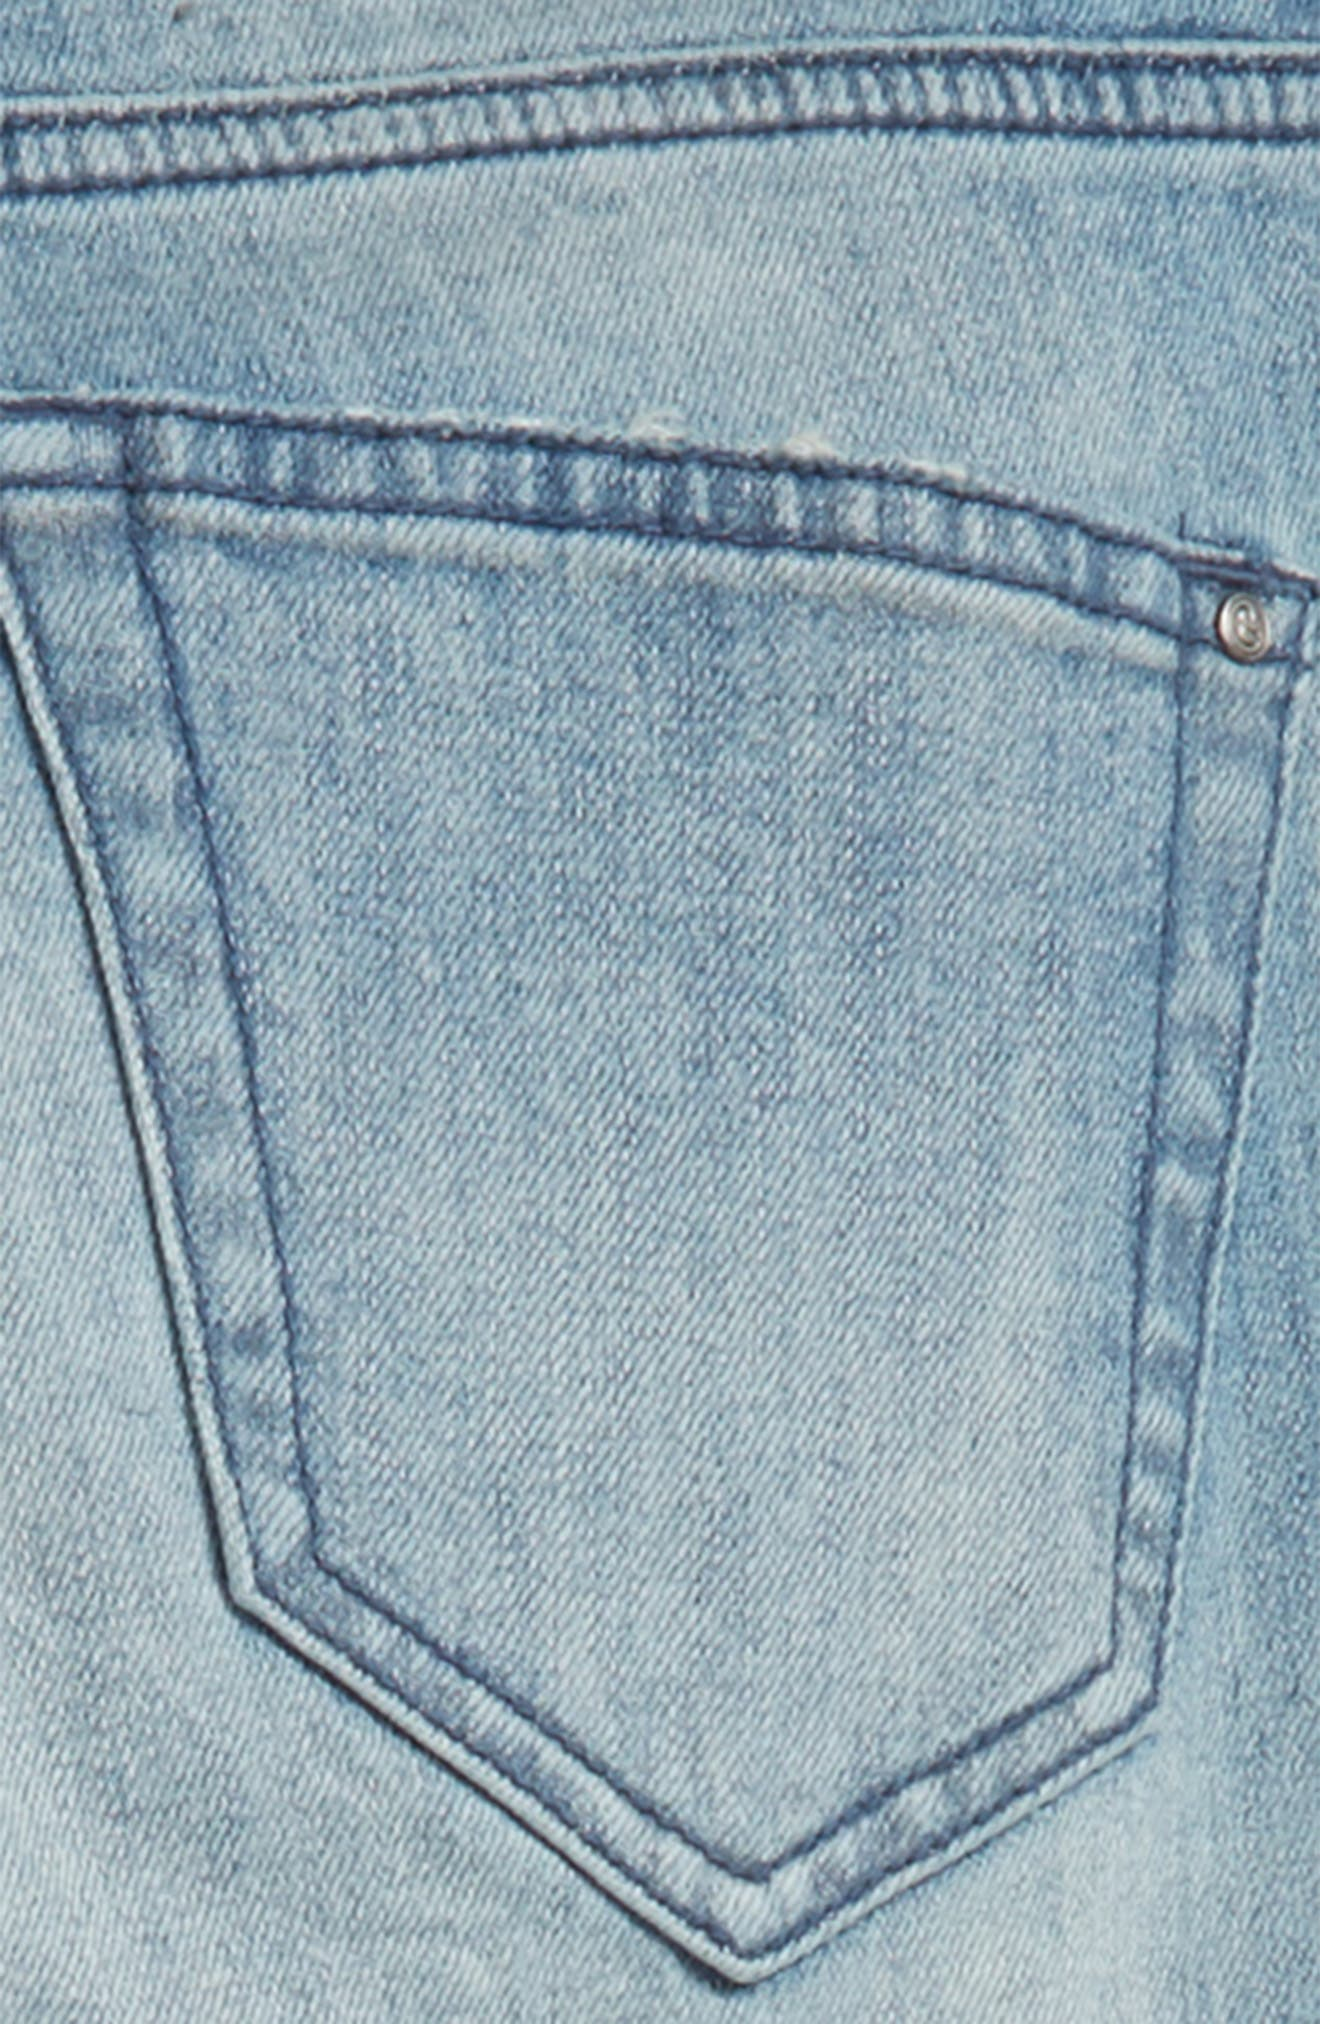 Classic Skinny Jeans,                             Alternate thumbnail 3, color,                             FROST WASH